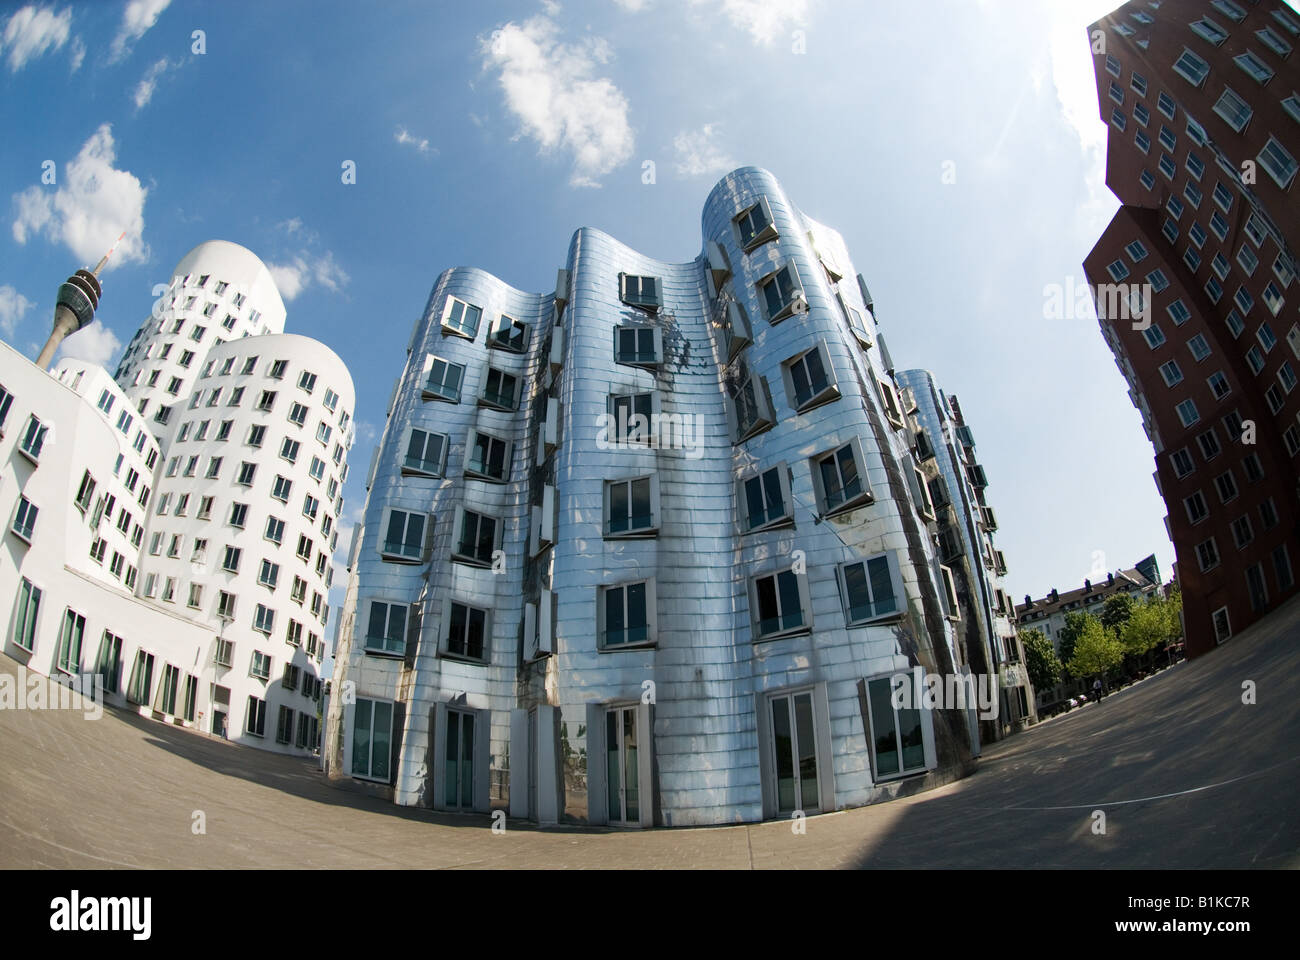 modern buildings designed by Frank Gehry in the Medienhafen of Duesseldorf Germany - Stock Image